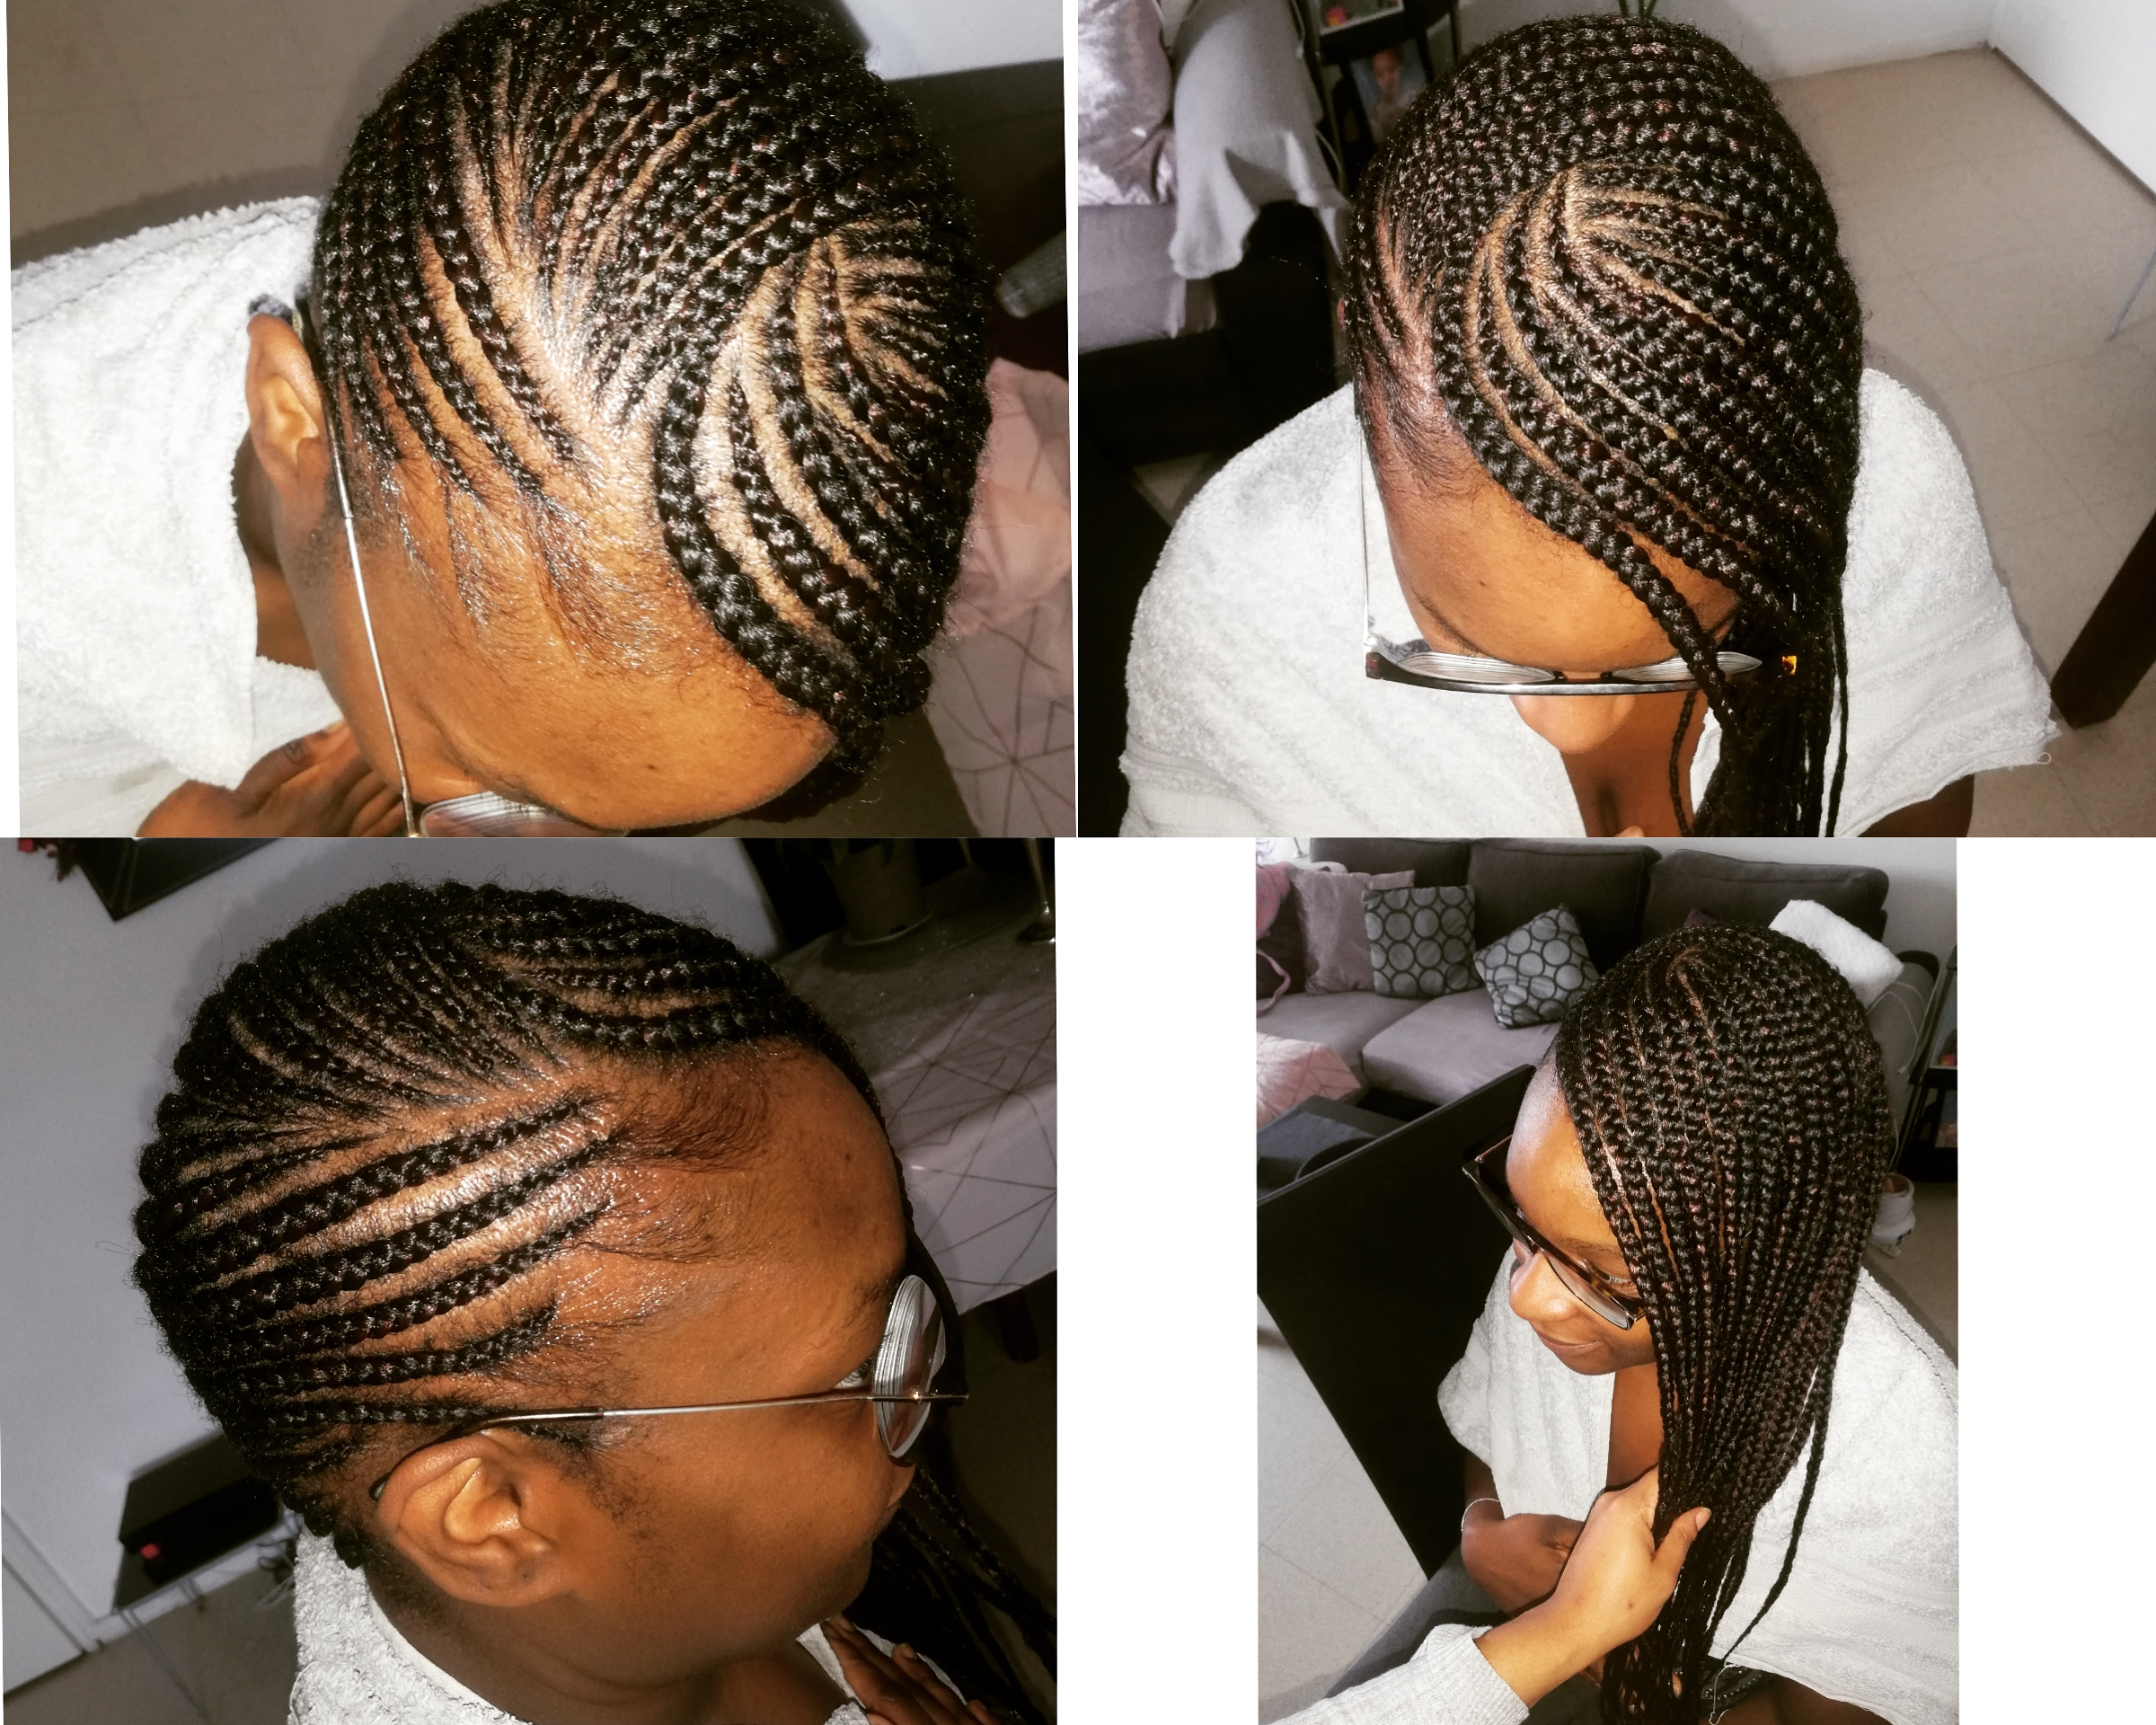 salon de coiffure afro tresse tresses box braids crochet braids vanilles tissages paris 75 77 78 91 92 93 94 95 ROKHUQKB